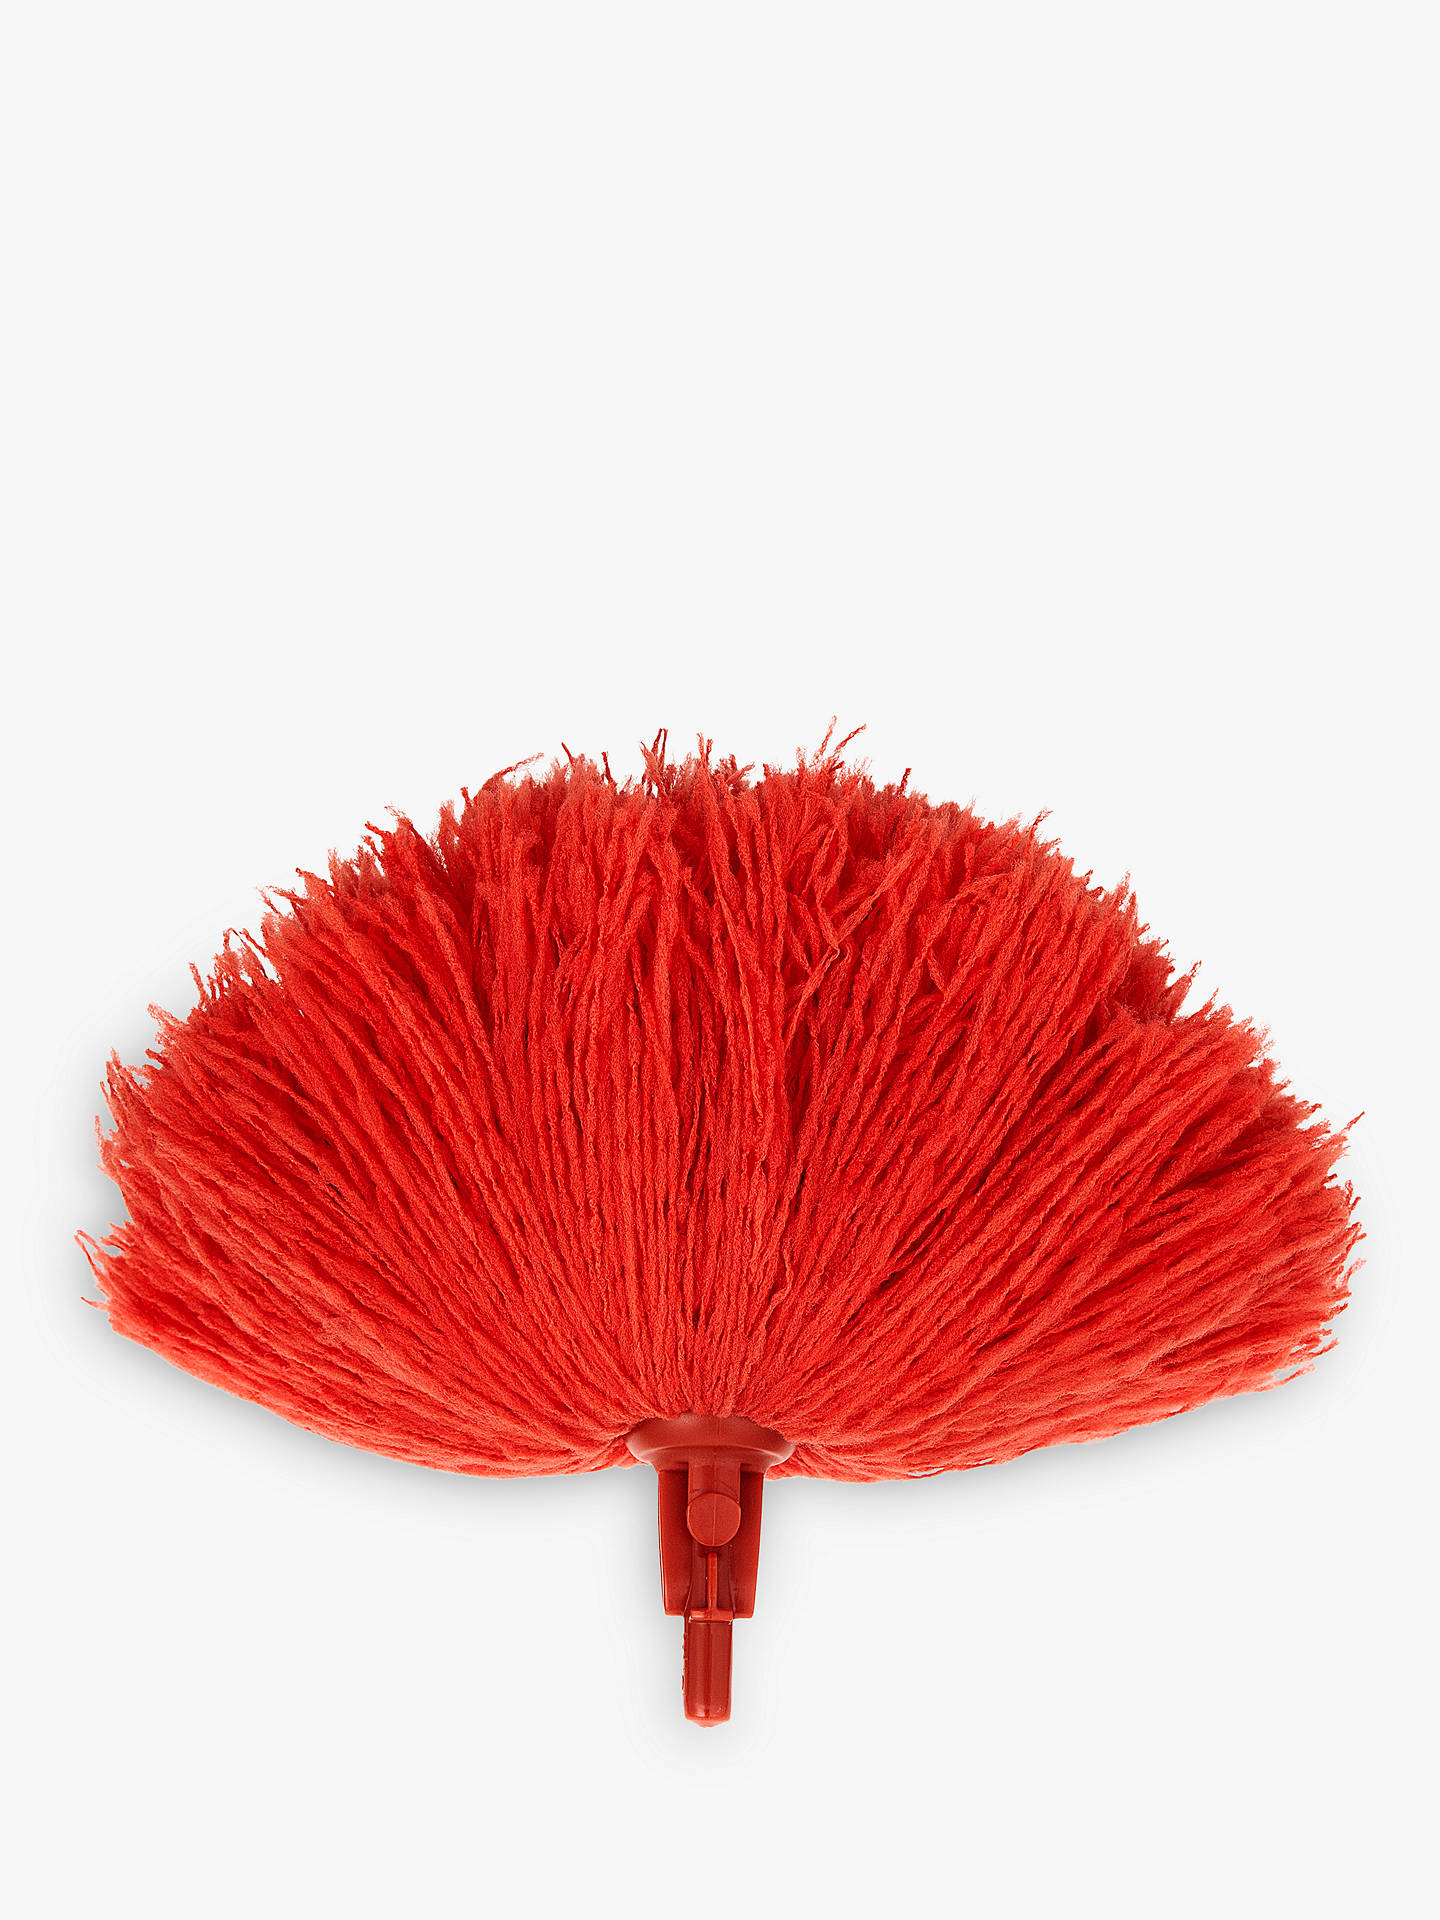 BuyOXO Delicate Duster Online at johnlewis.com